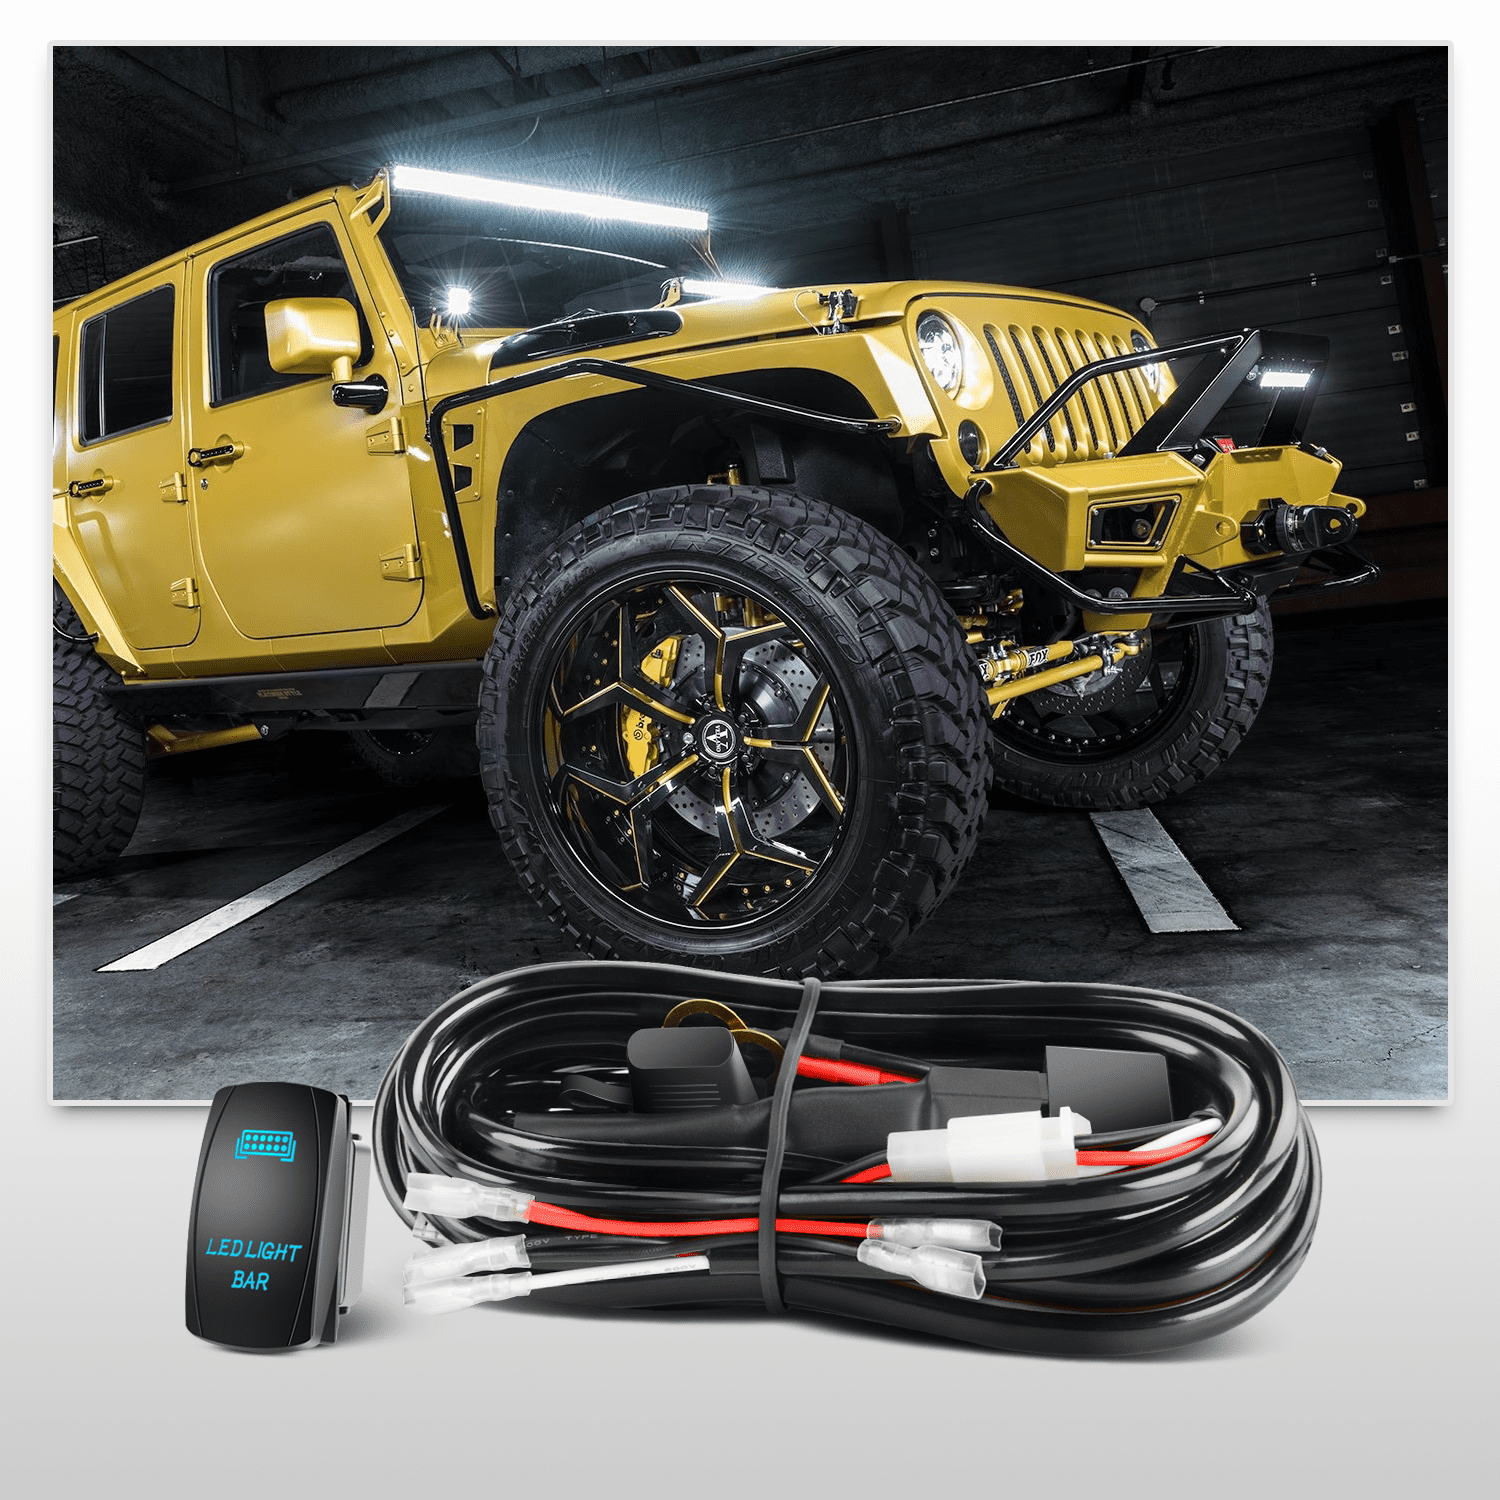 LED Light Bar Nilight 32 Inch 180W Black Curved Work Light Bar Combo Offroad Lighting with Wiring Harness Kit, 2 Year Warranty